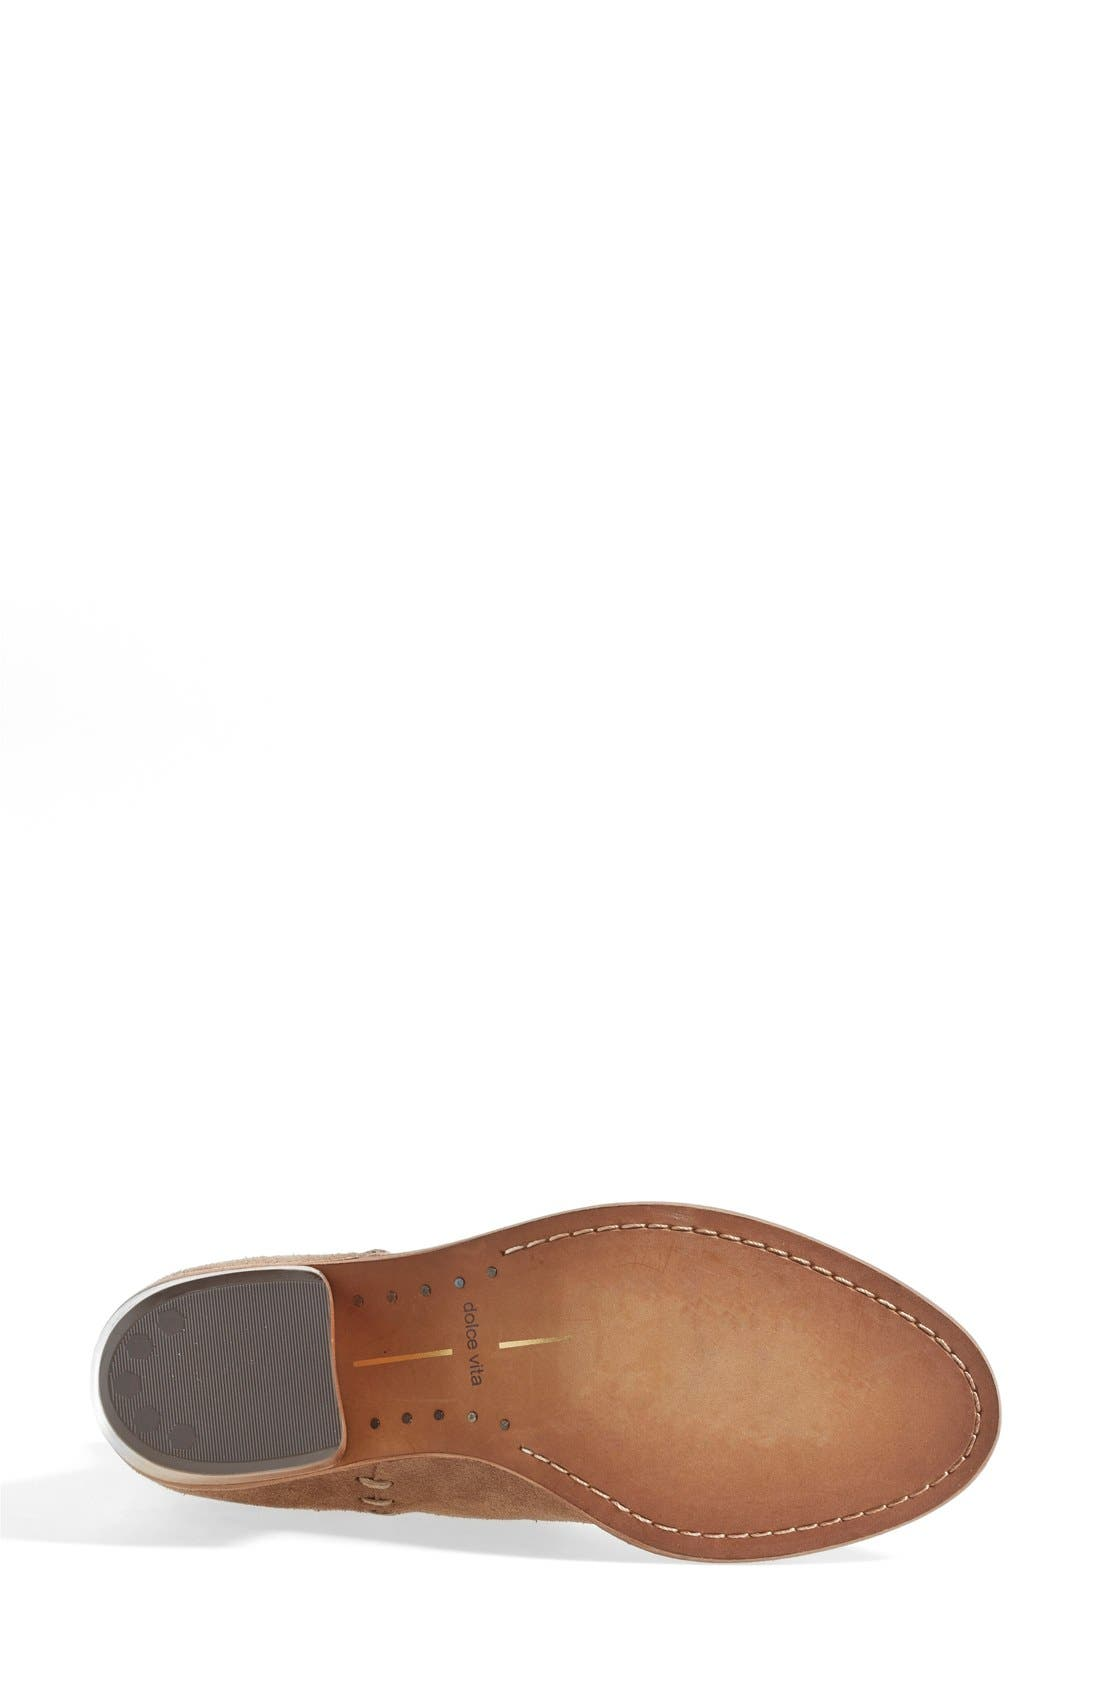 'Graham' Suede Bootie,                             Alternate thumbnail 4, color,                             Taupe Suede